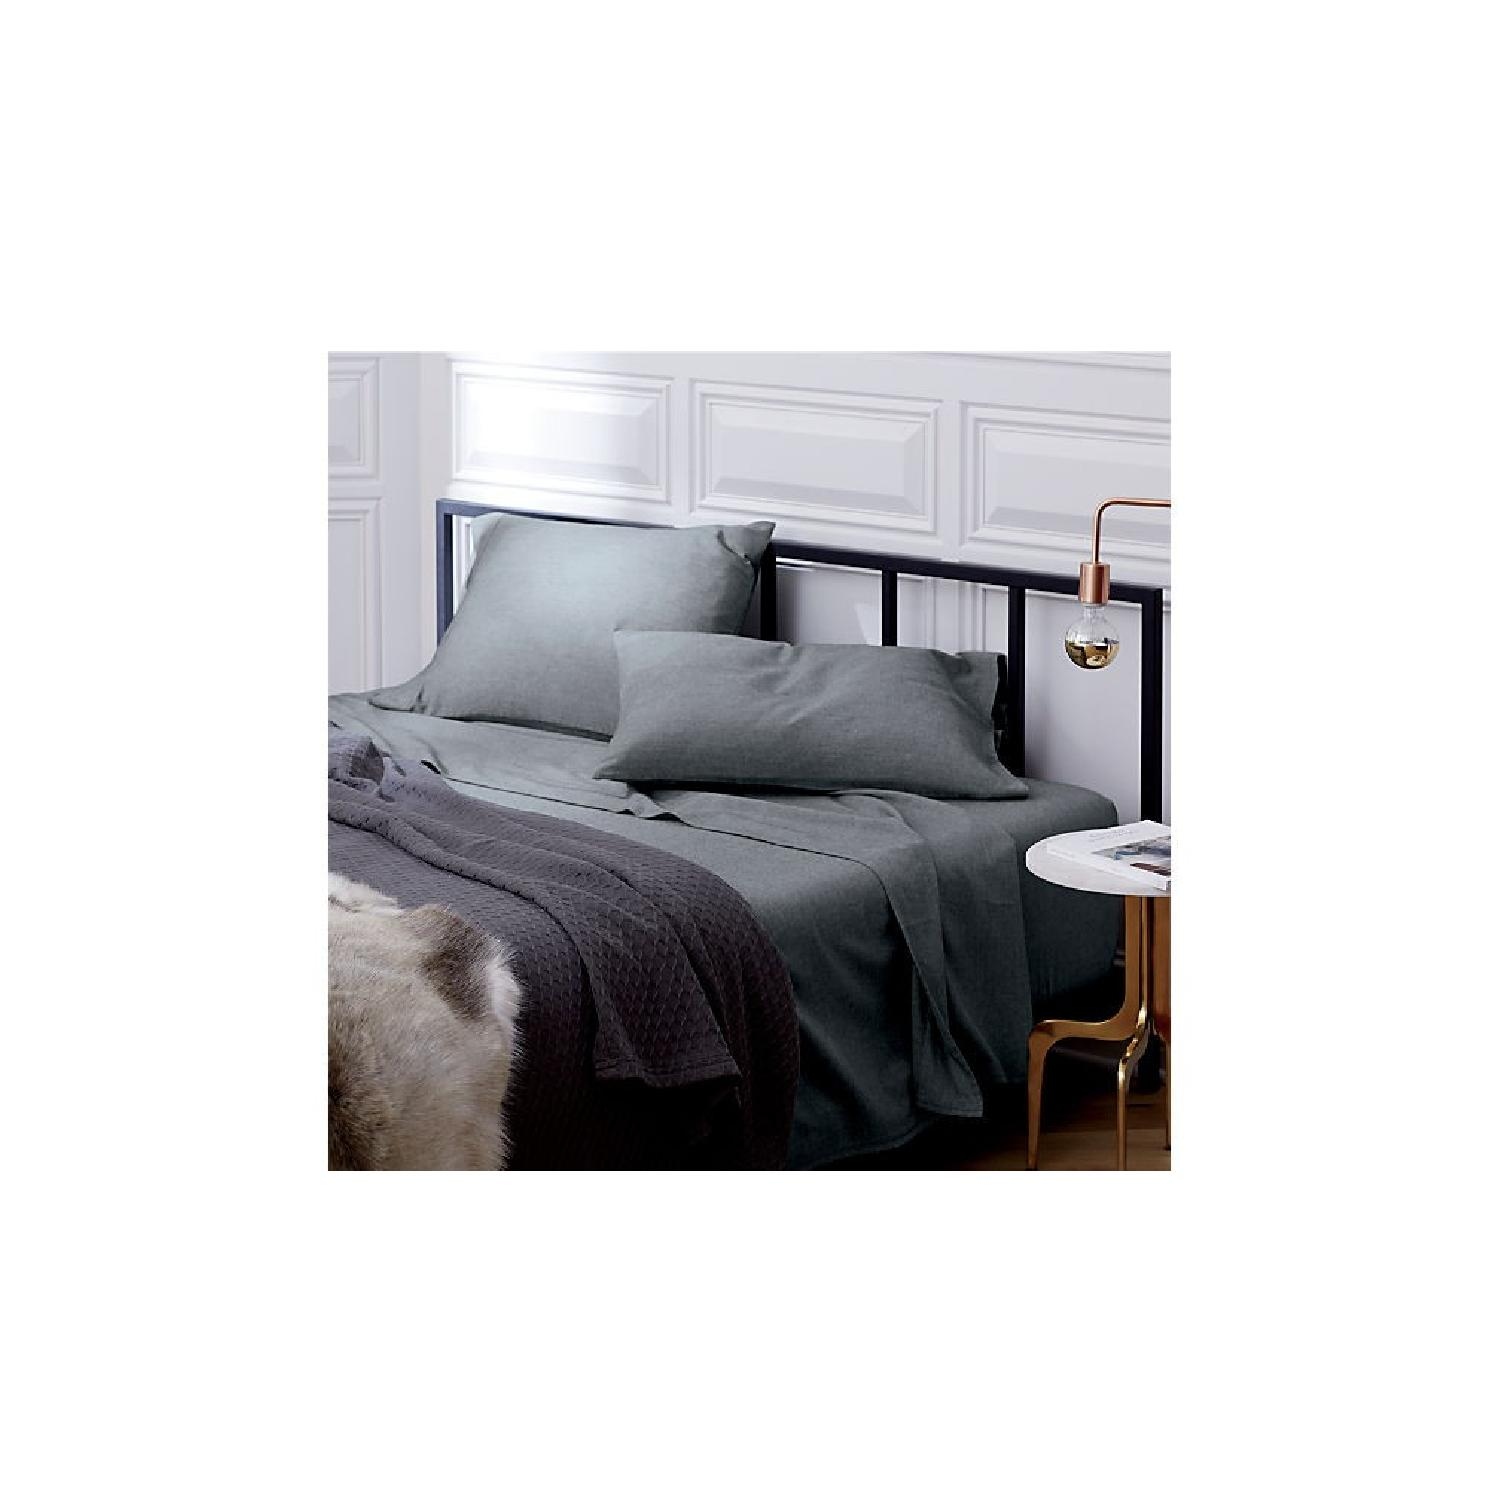 CB2 Alchemy Black Queen Bed Frame - image-3